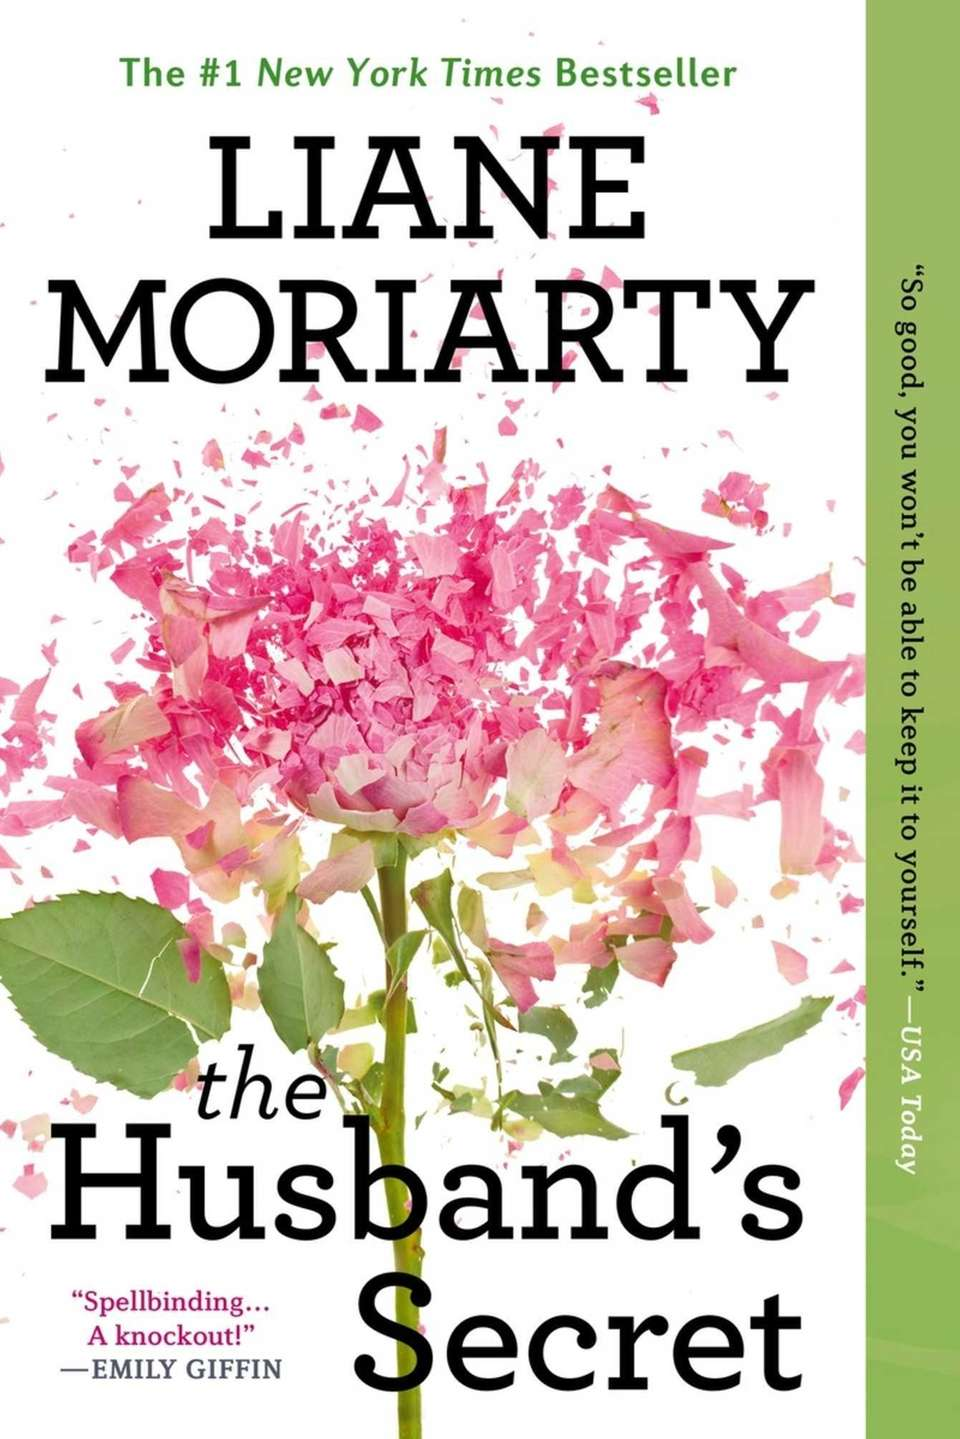 By Liane Moriarty, about a wife whose life